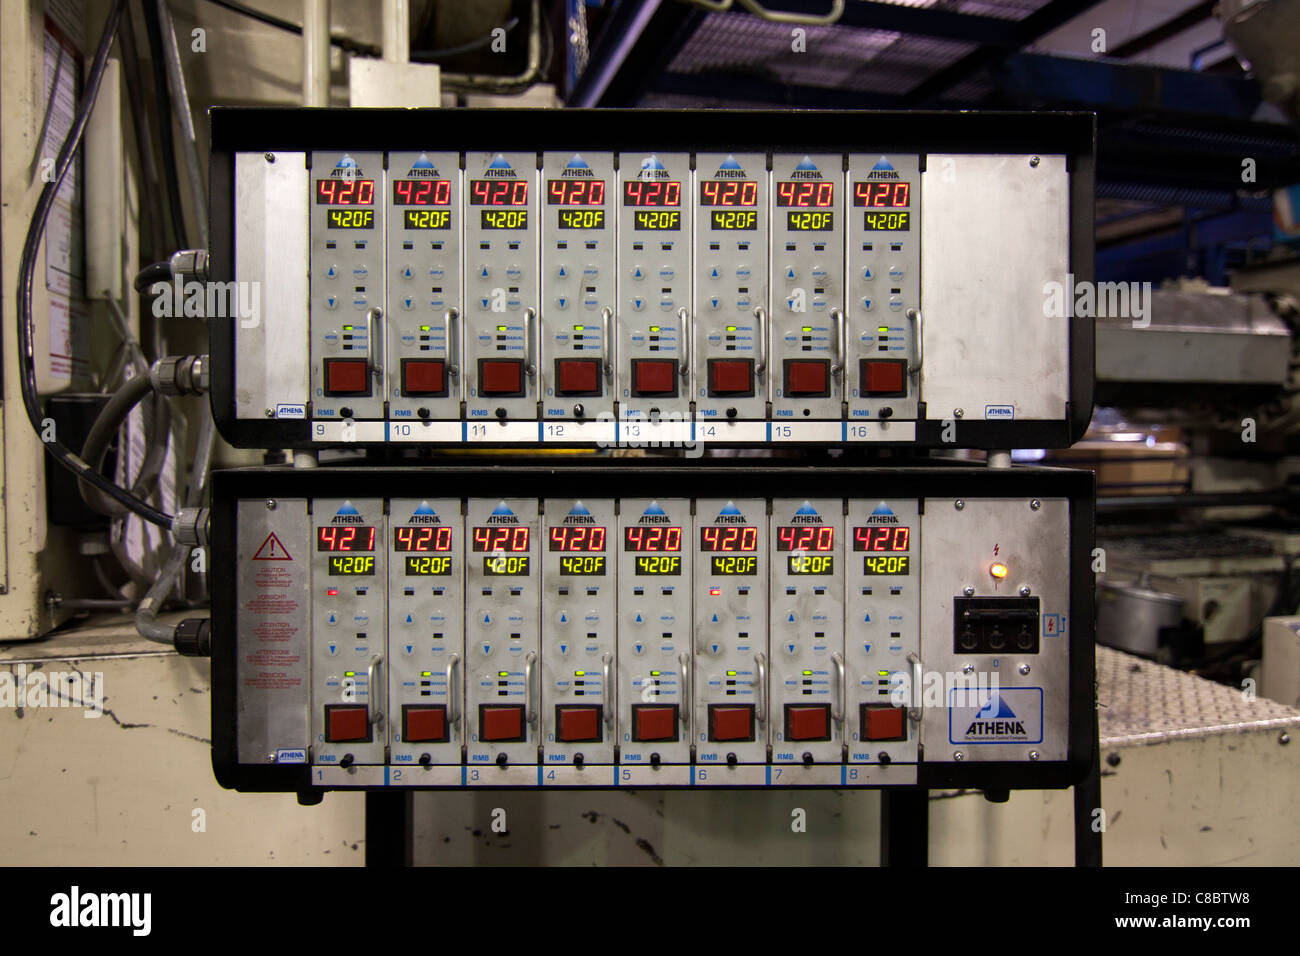 An athena temperature control panel at a plastics molding injection plant in Hudson, Colorado, USA. - Stock Image